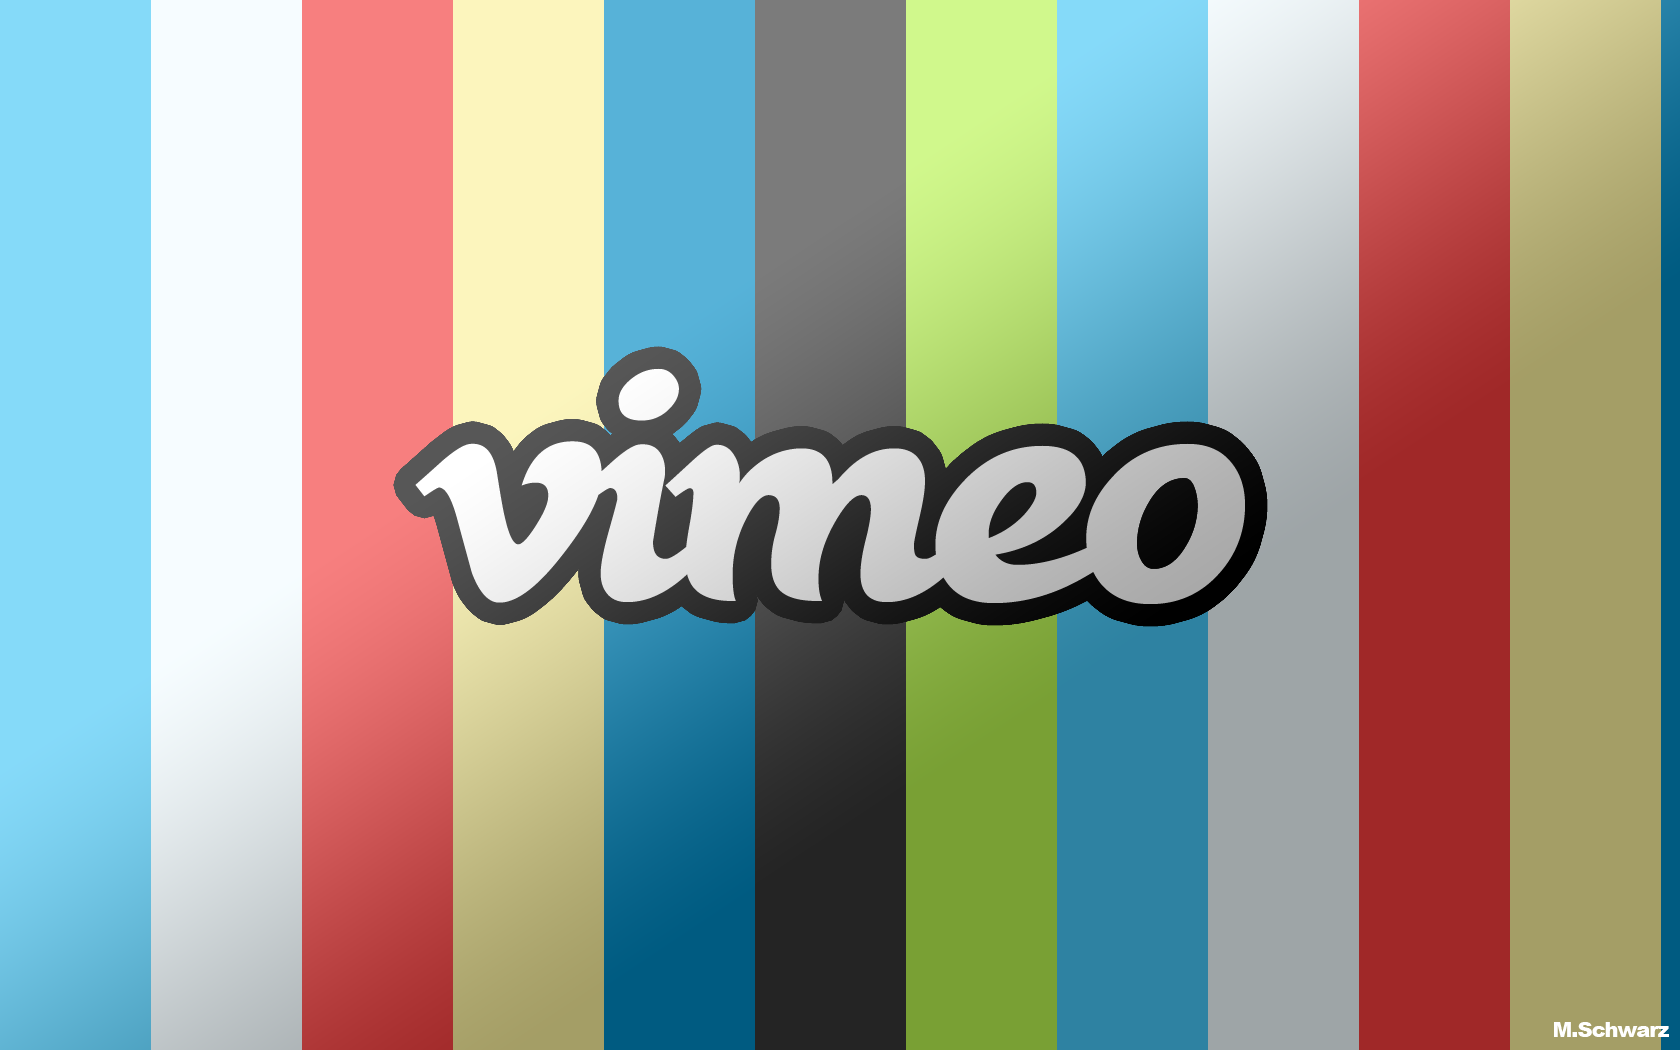 Vimeos brand creative fund wants to help you land paid gigs vimeos brand creative fund wants to help you land paid gigs videomaker stopboris Image collections